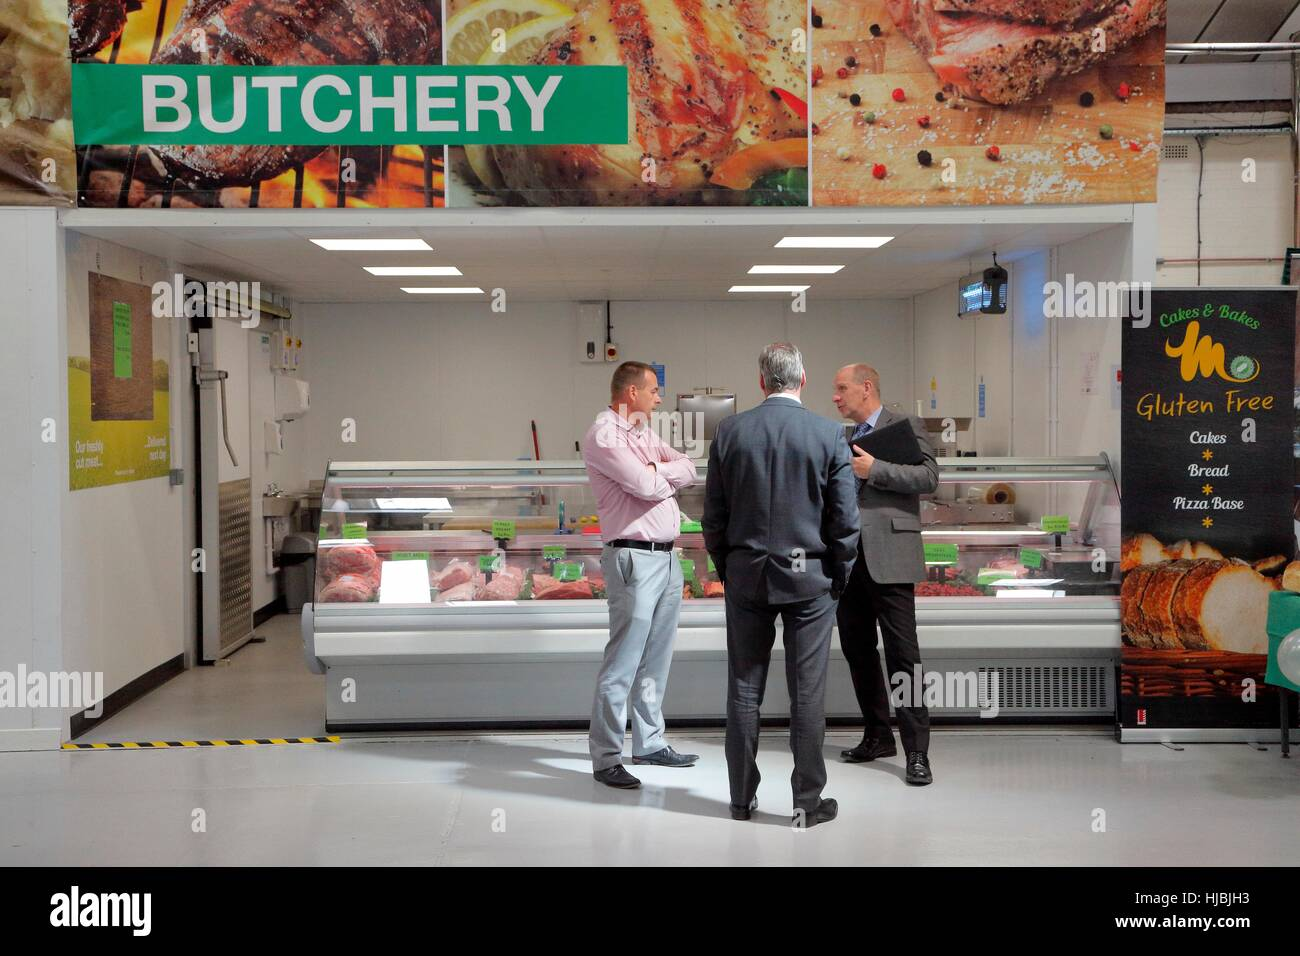 Three men chatting in front of Butchery section of a food wholesaler. - Stock Image